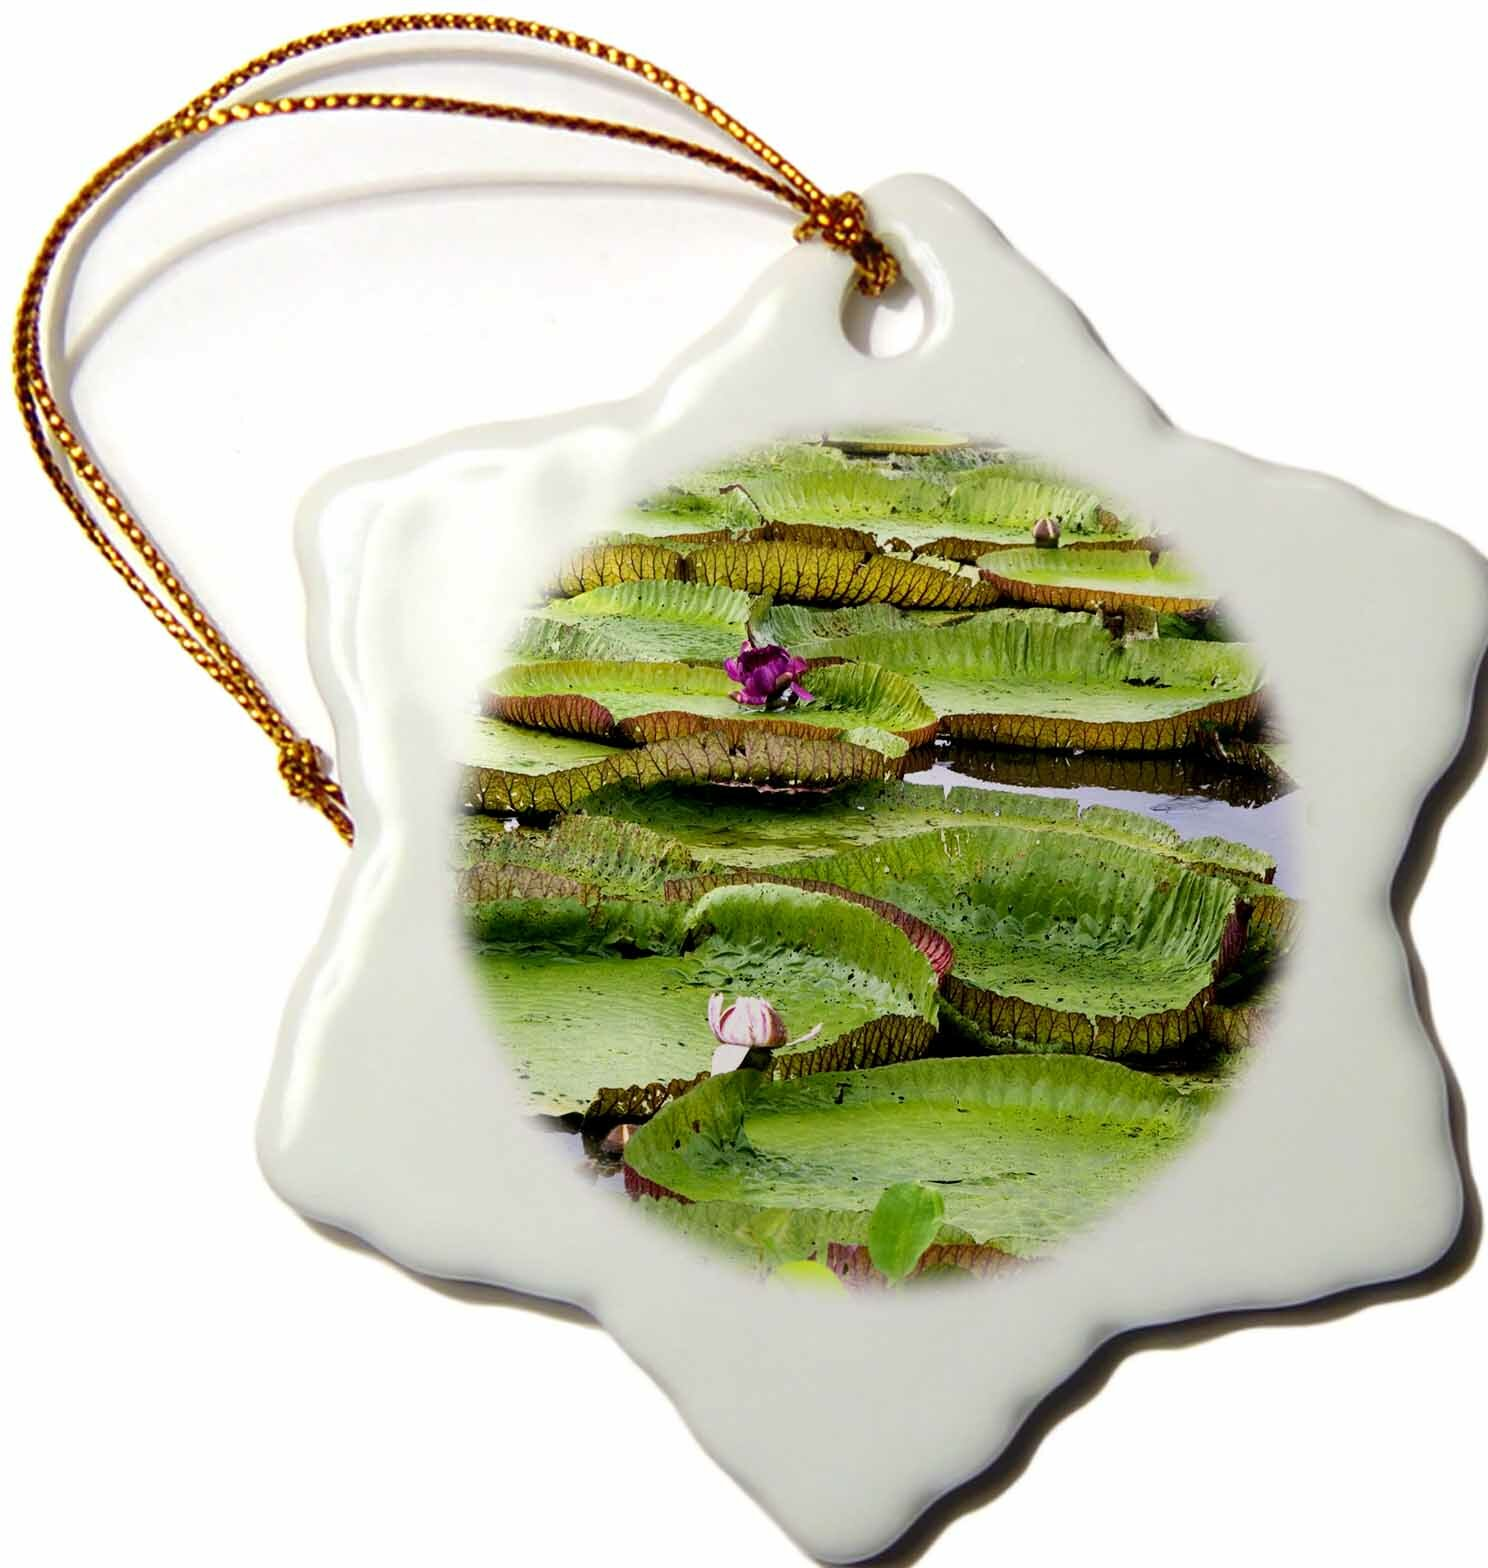 The Holiday Aisle Water Lily Flowers Amazon Manaus Brazil Snowflake Holiday Shaped Ornament Wayfair